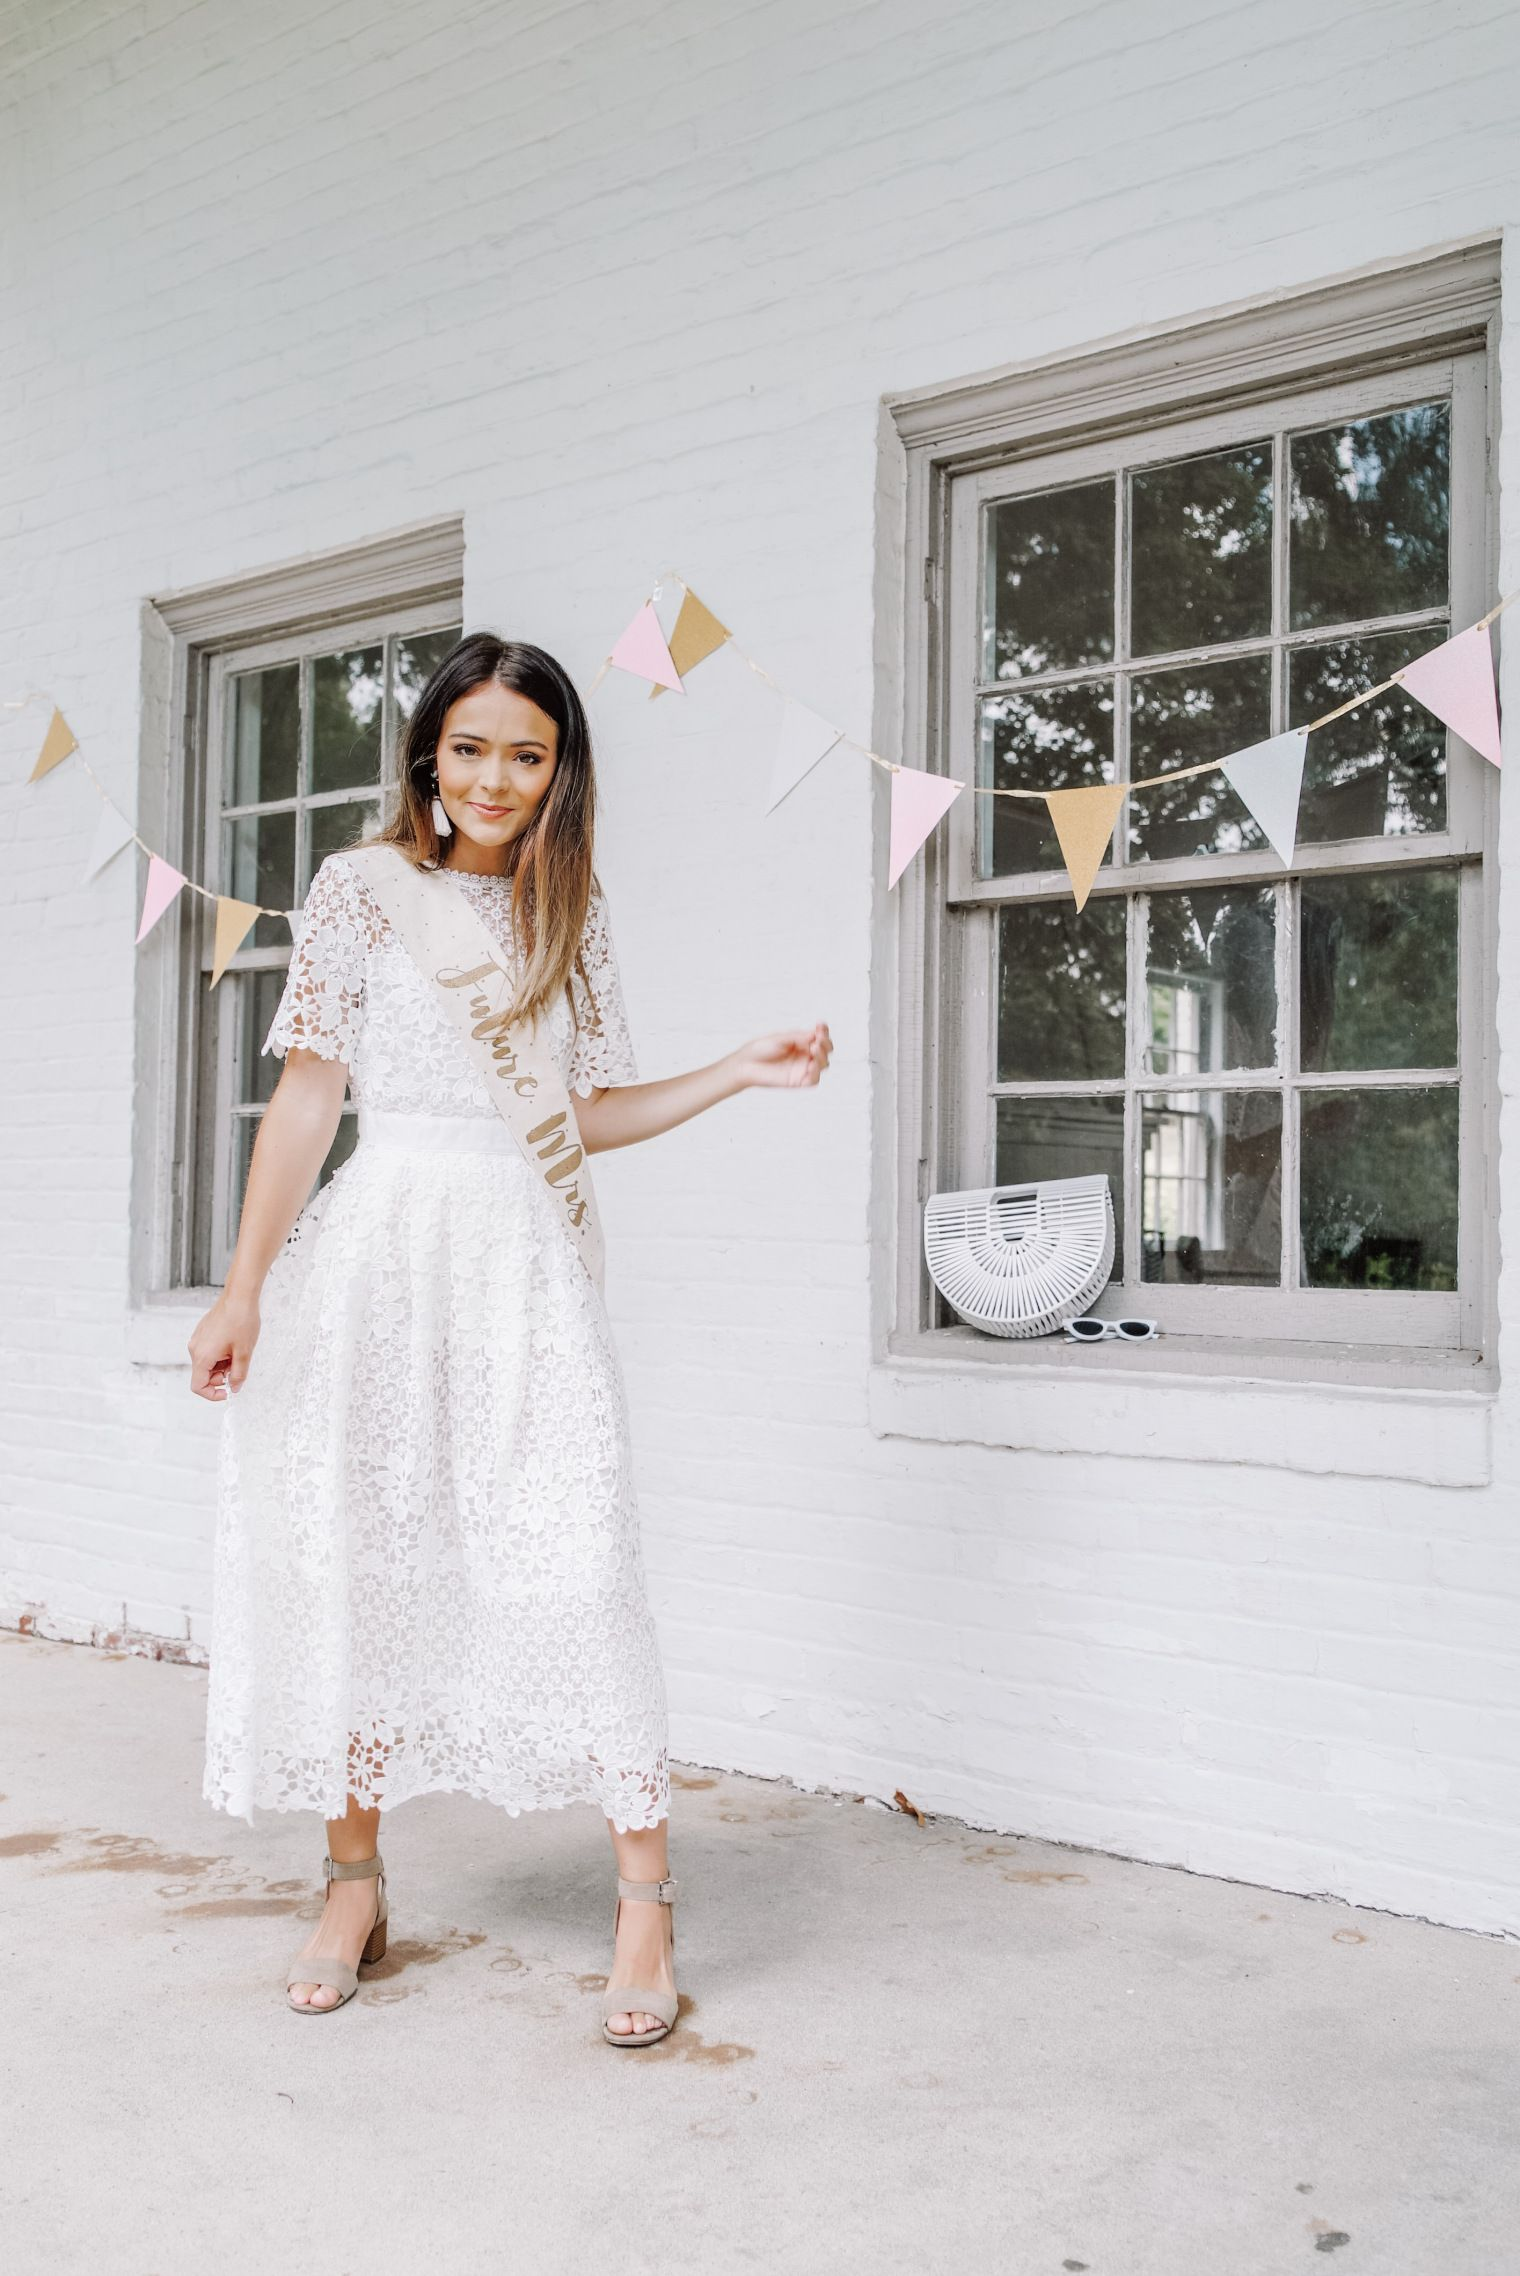 Bridal Looks Rehearsal Dinner Bridal Shower Engagement Photos Bachelorette Party And White Bridal Shower Dress Bridal Shower Dress Wedding Shower Outfit [ 2276 x 1520 Pixel ]